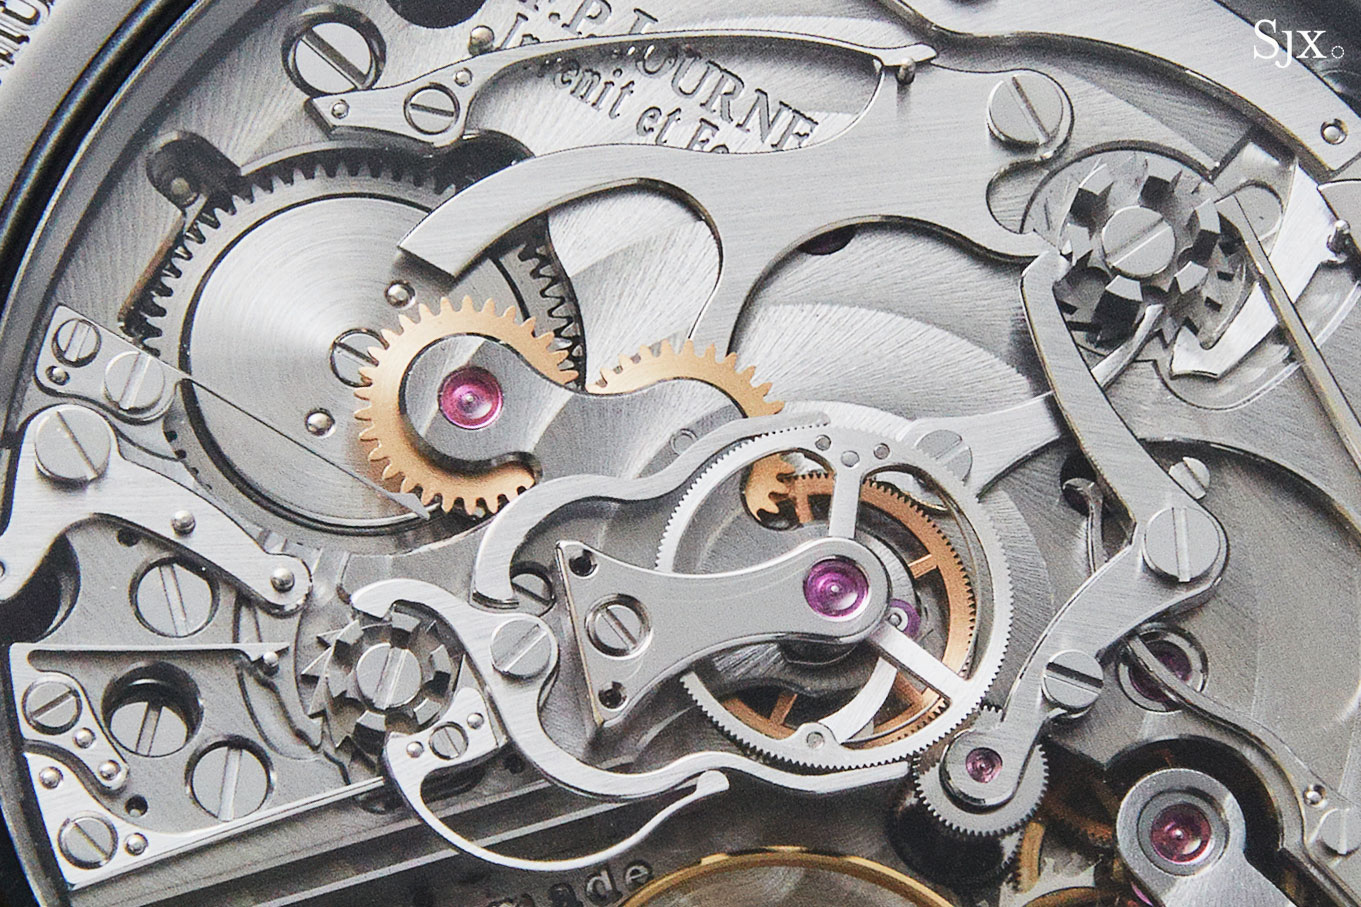 FP Journe Linesport Chronograph split seconds titanium 2